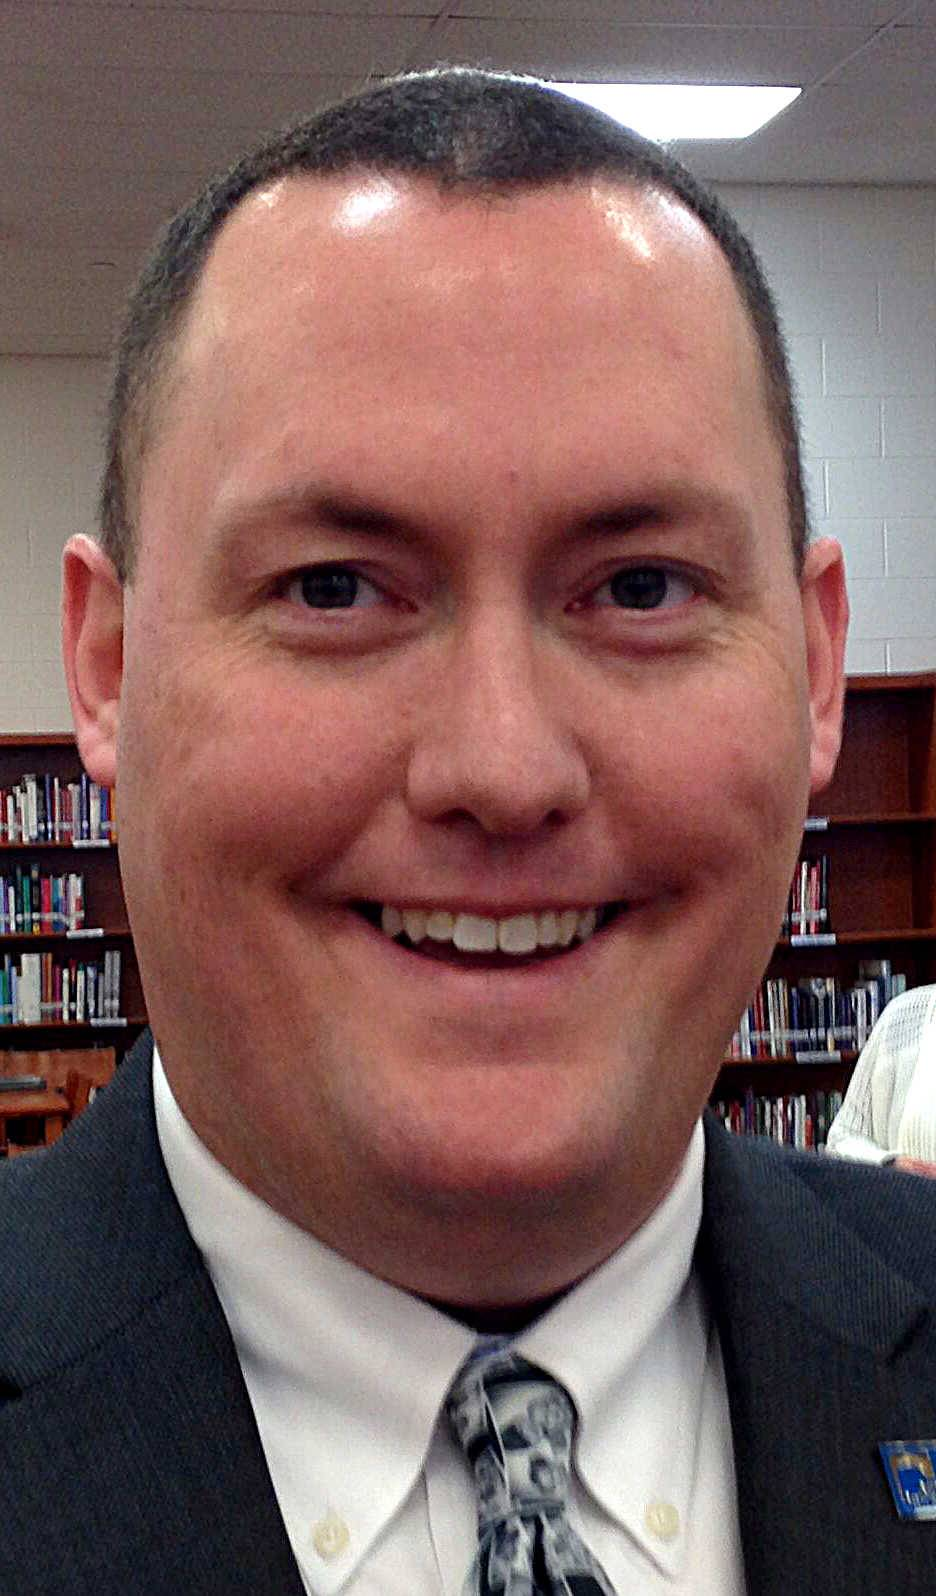 Lockport school superintendent seeks Kaneland job